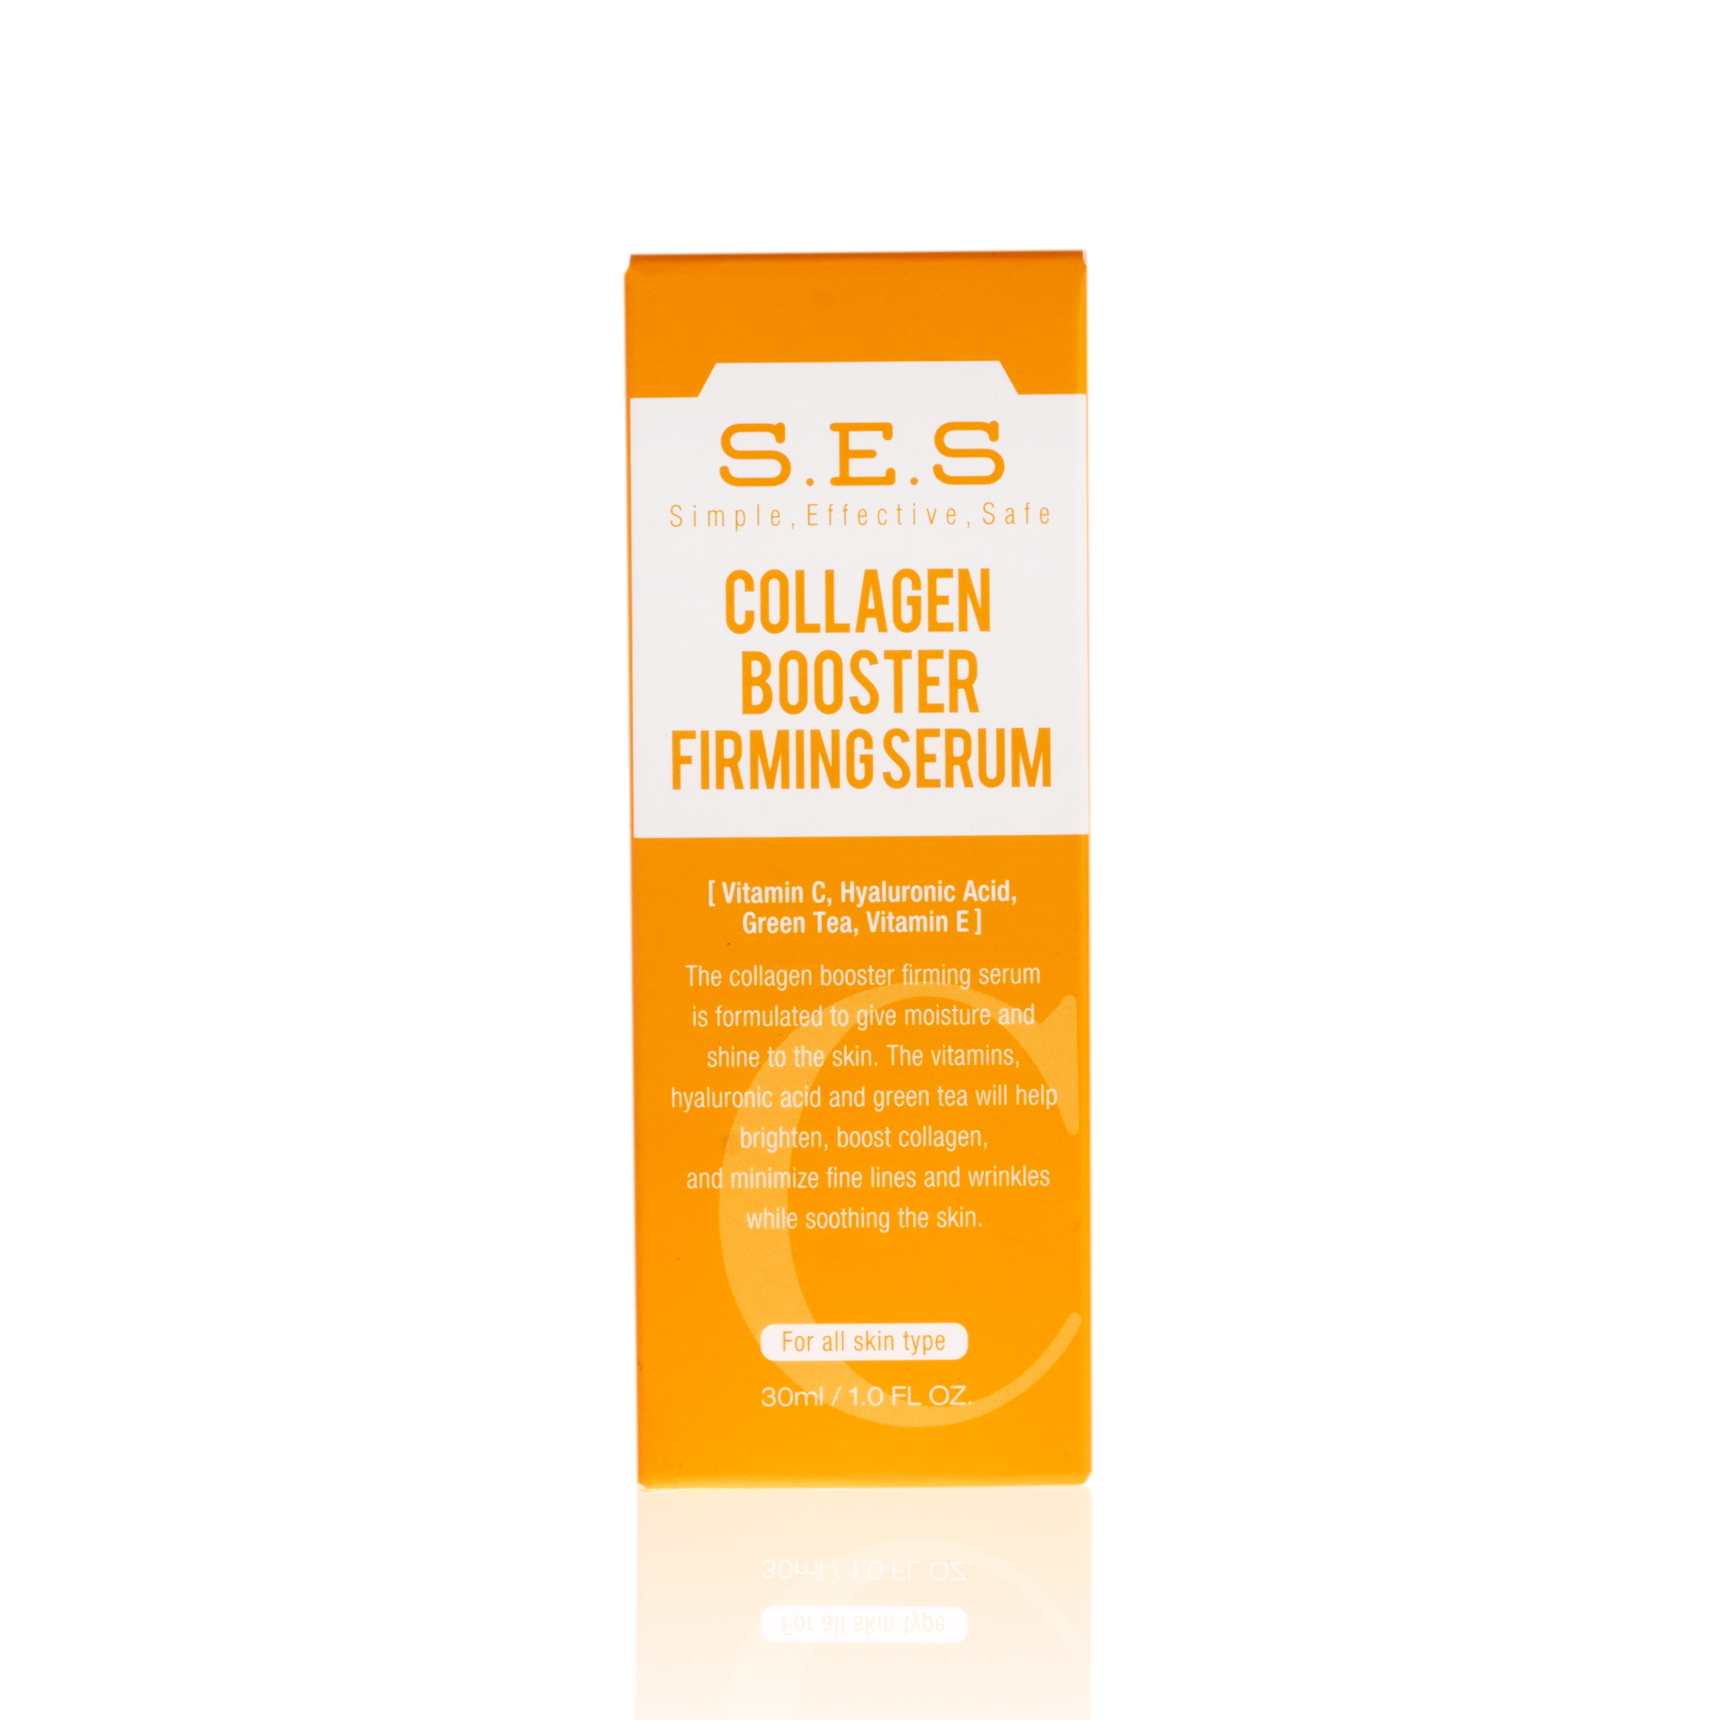 S.E.S. Collagen Booster Firming Serum packaging